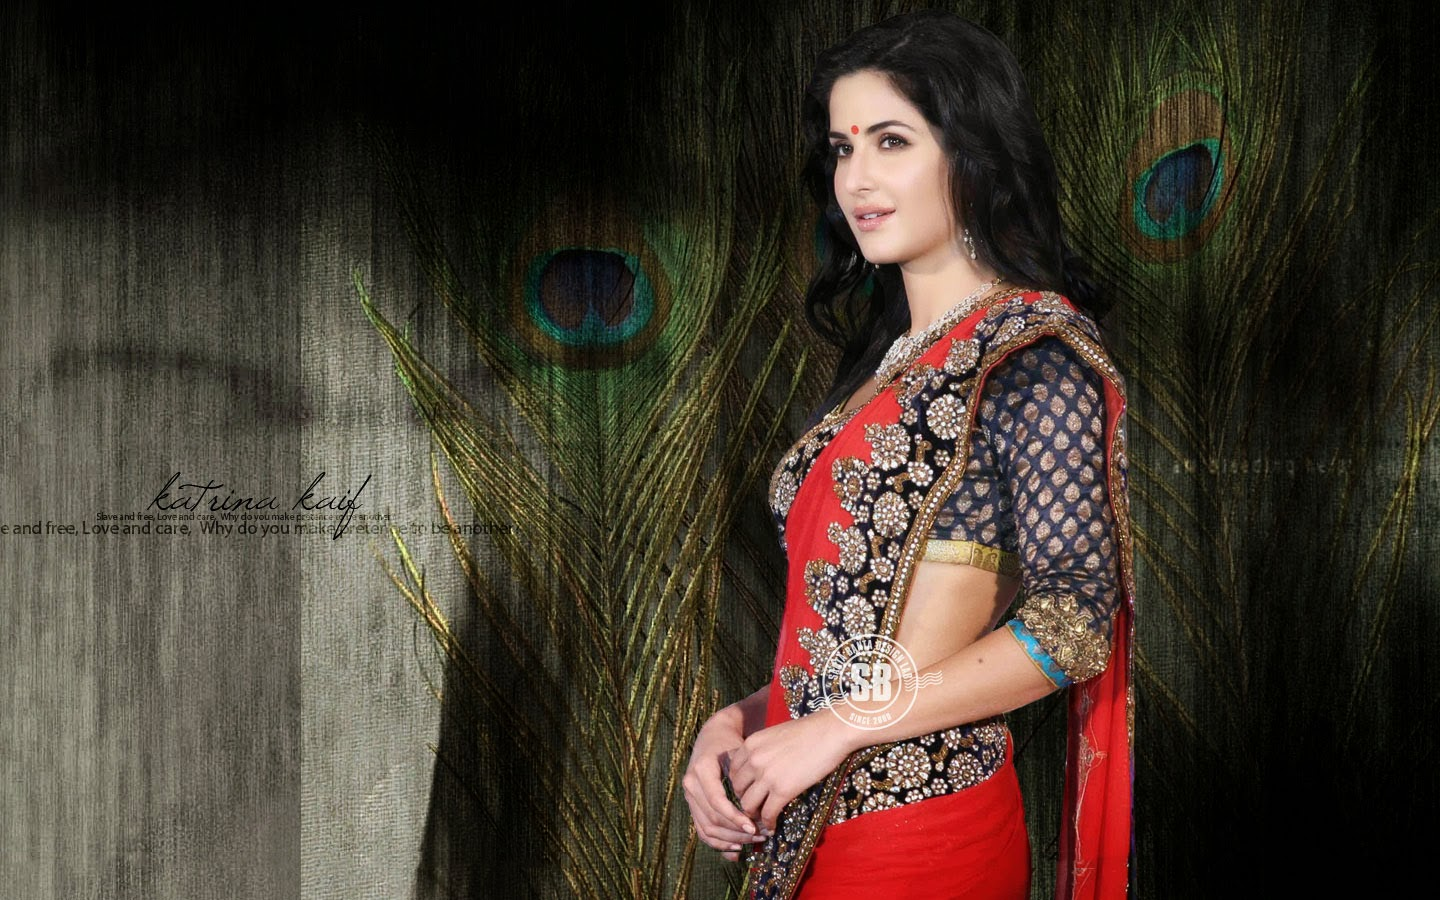 Fukrey Look Katrina Kaif Hd Wallpapers-5154